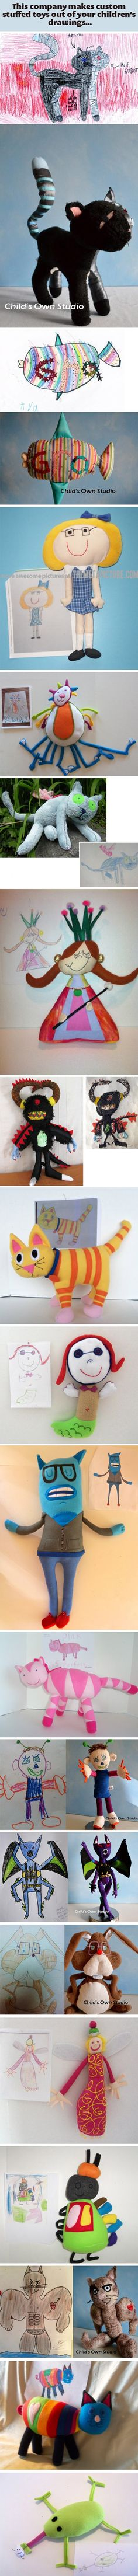 Custom stuffed toys from children's drawings. Why didn't I have this??